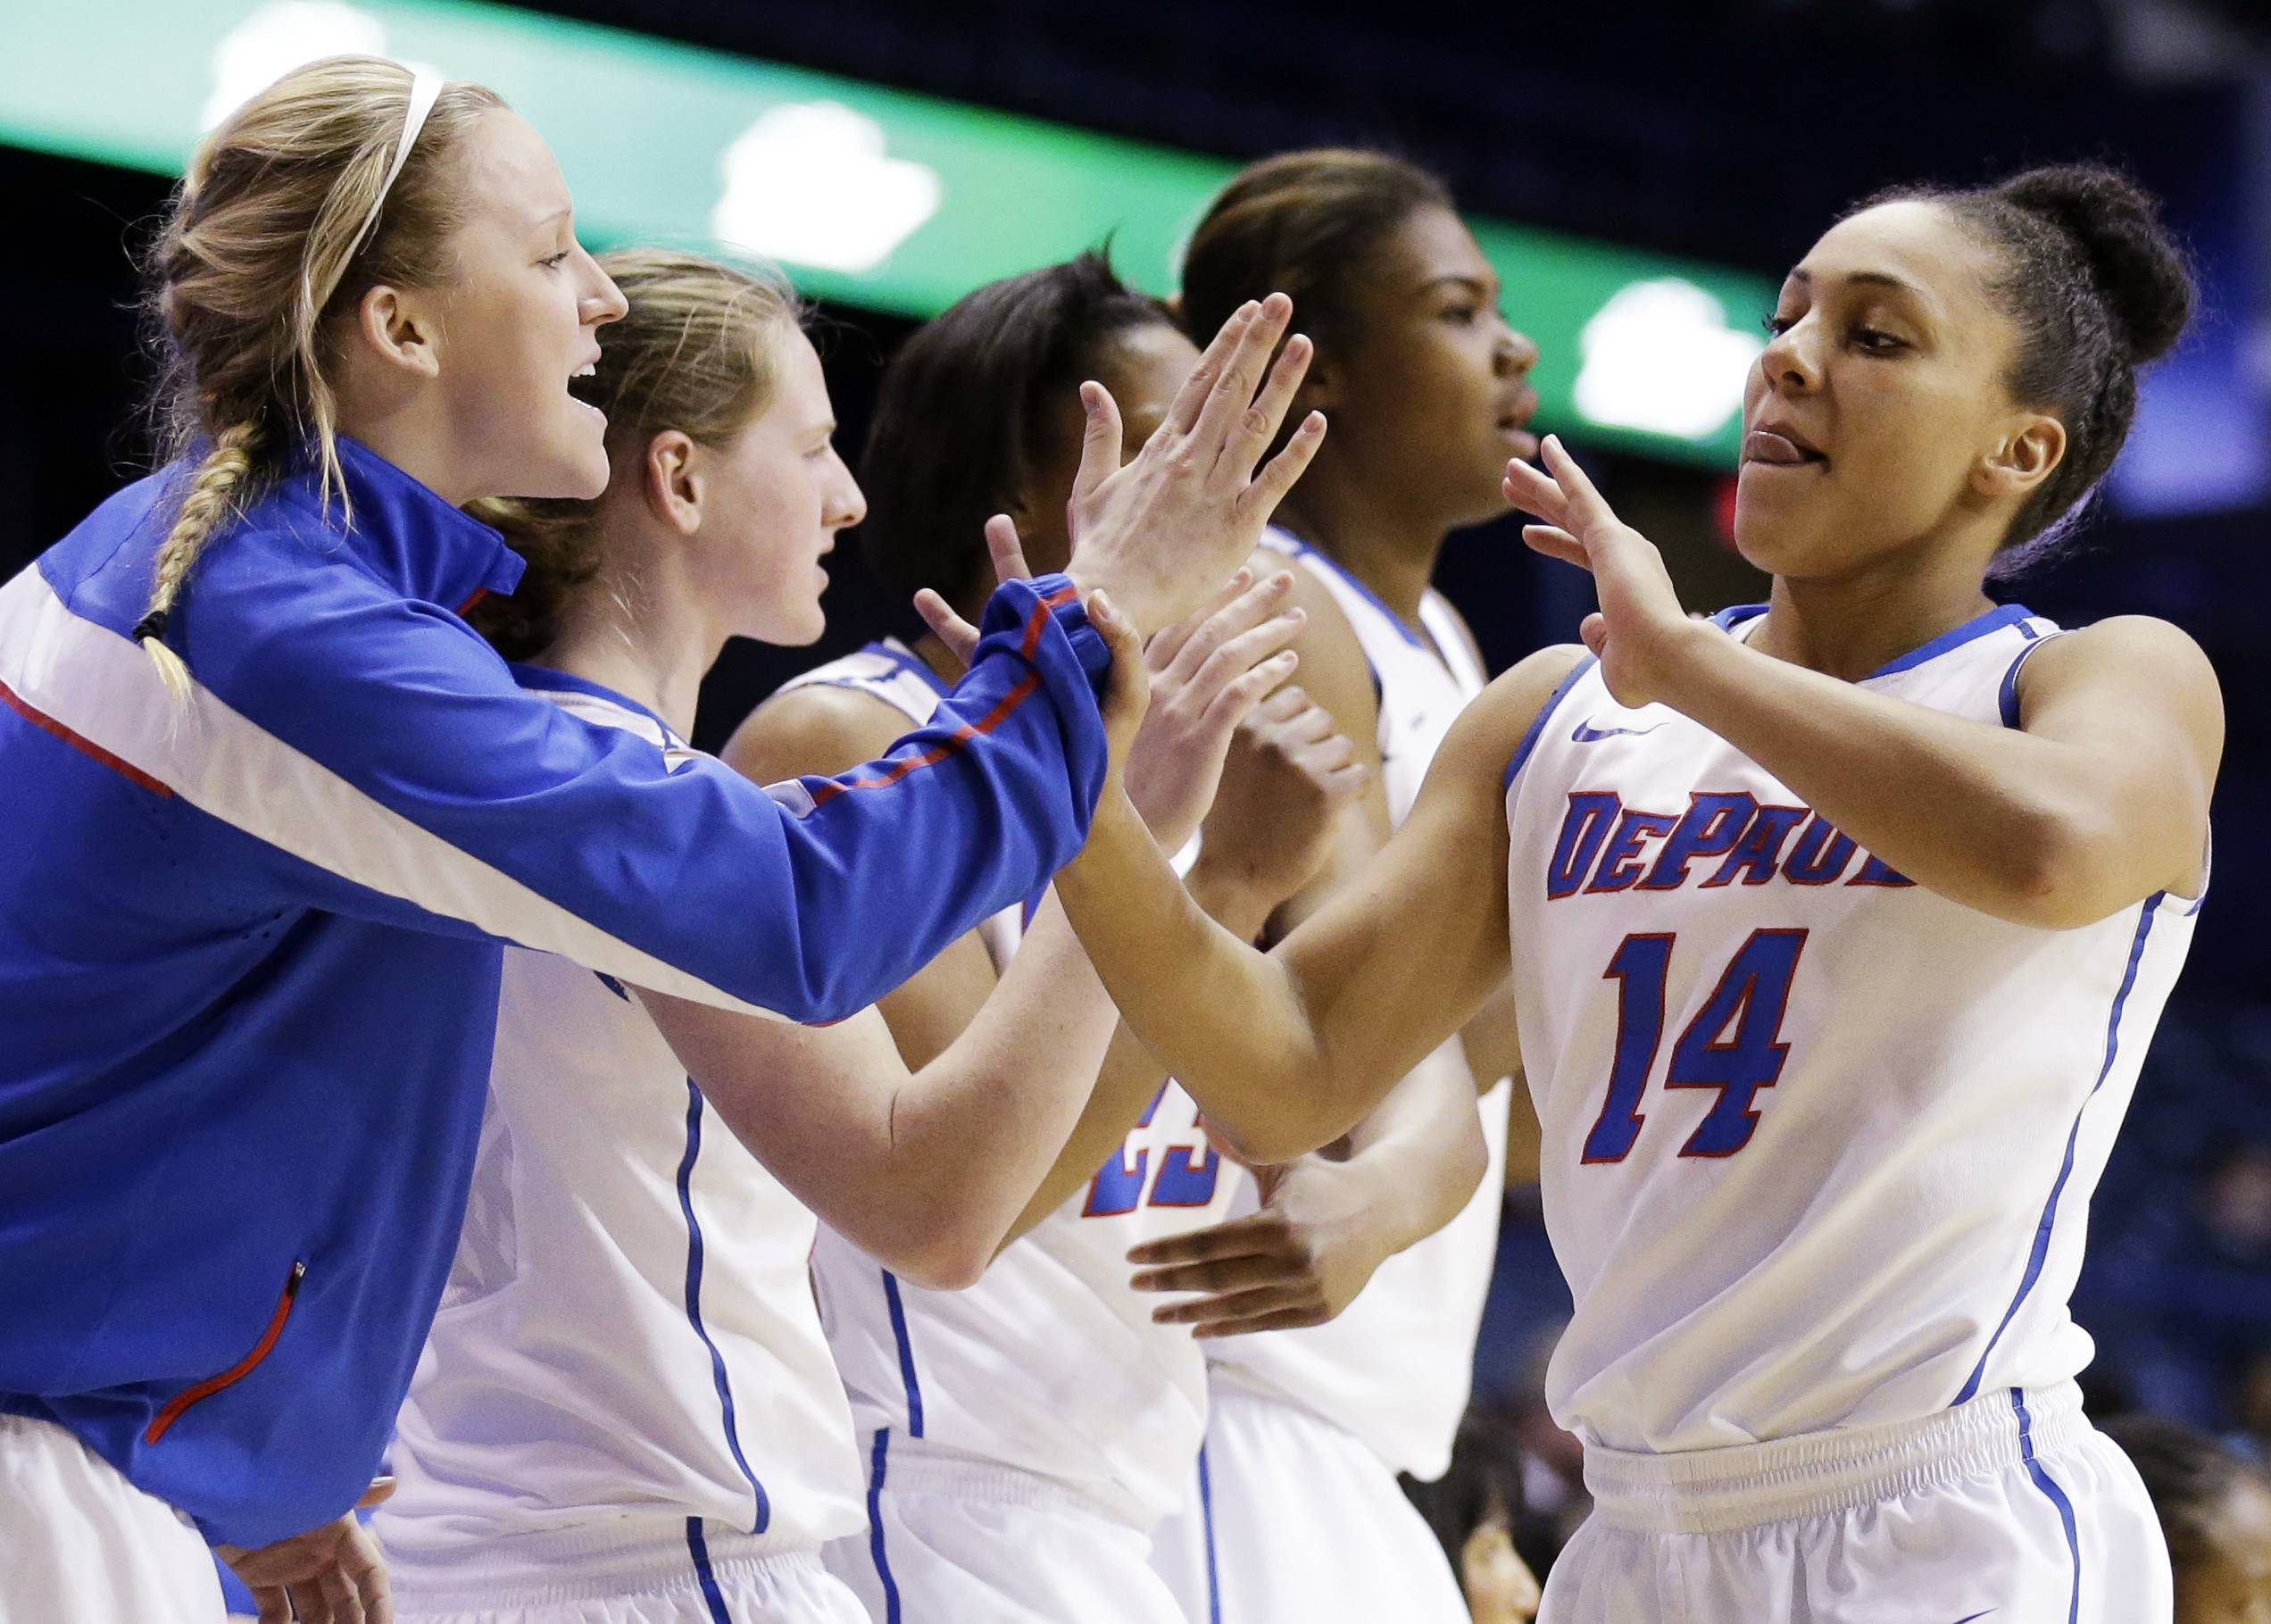 DePaul guard Jessica January (14) celebrates with teammates as she walks back to the bench during the second half of an NCAA college basketball game against St. John's in the final of the 2014 Big East women's basketball tournament in Rosemont, Ill., Tuesday, March 11, 2014. DePaul won 65-57.